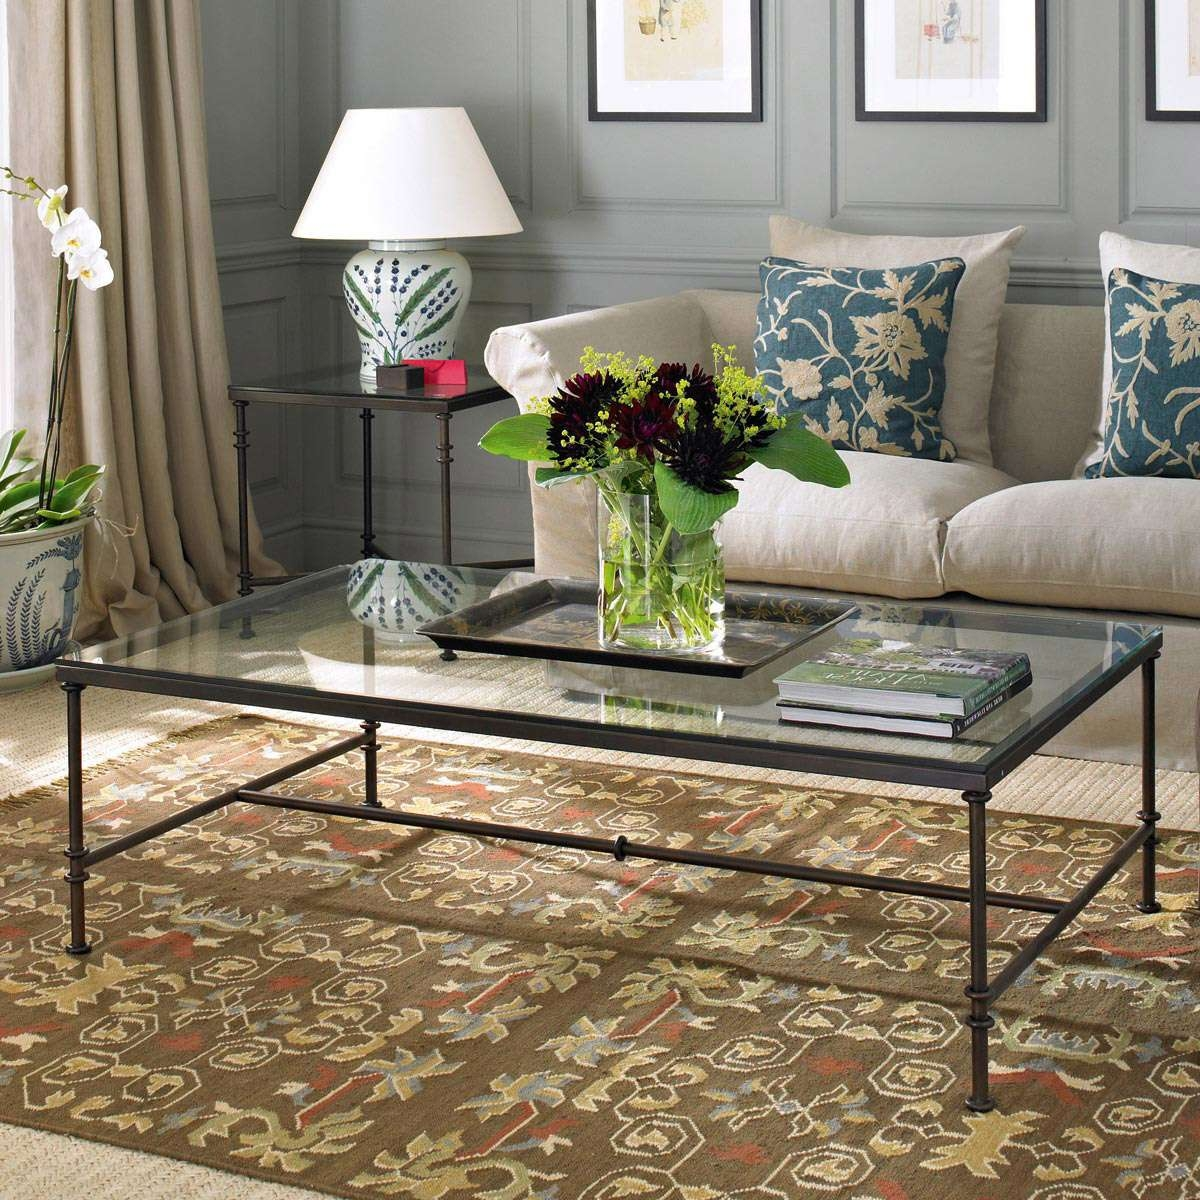 Metal & Glass Coffee Tables – Glass Coffee Tables, Gray Shag Rugs In Favorite Metal And Glass Coffee Tables (View 13 of 20)